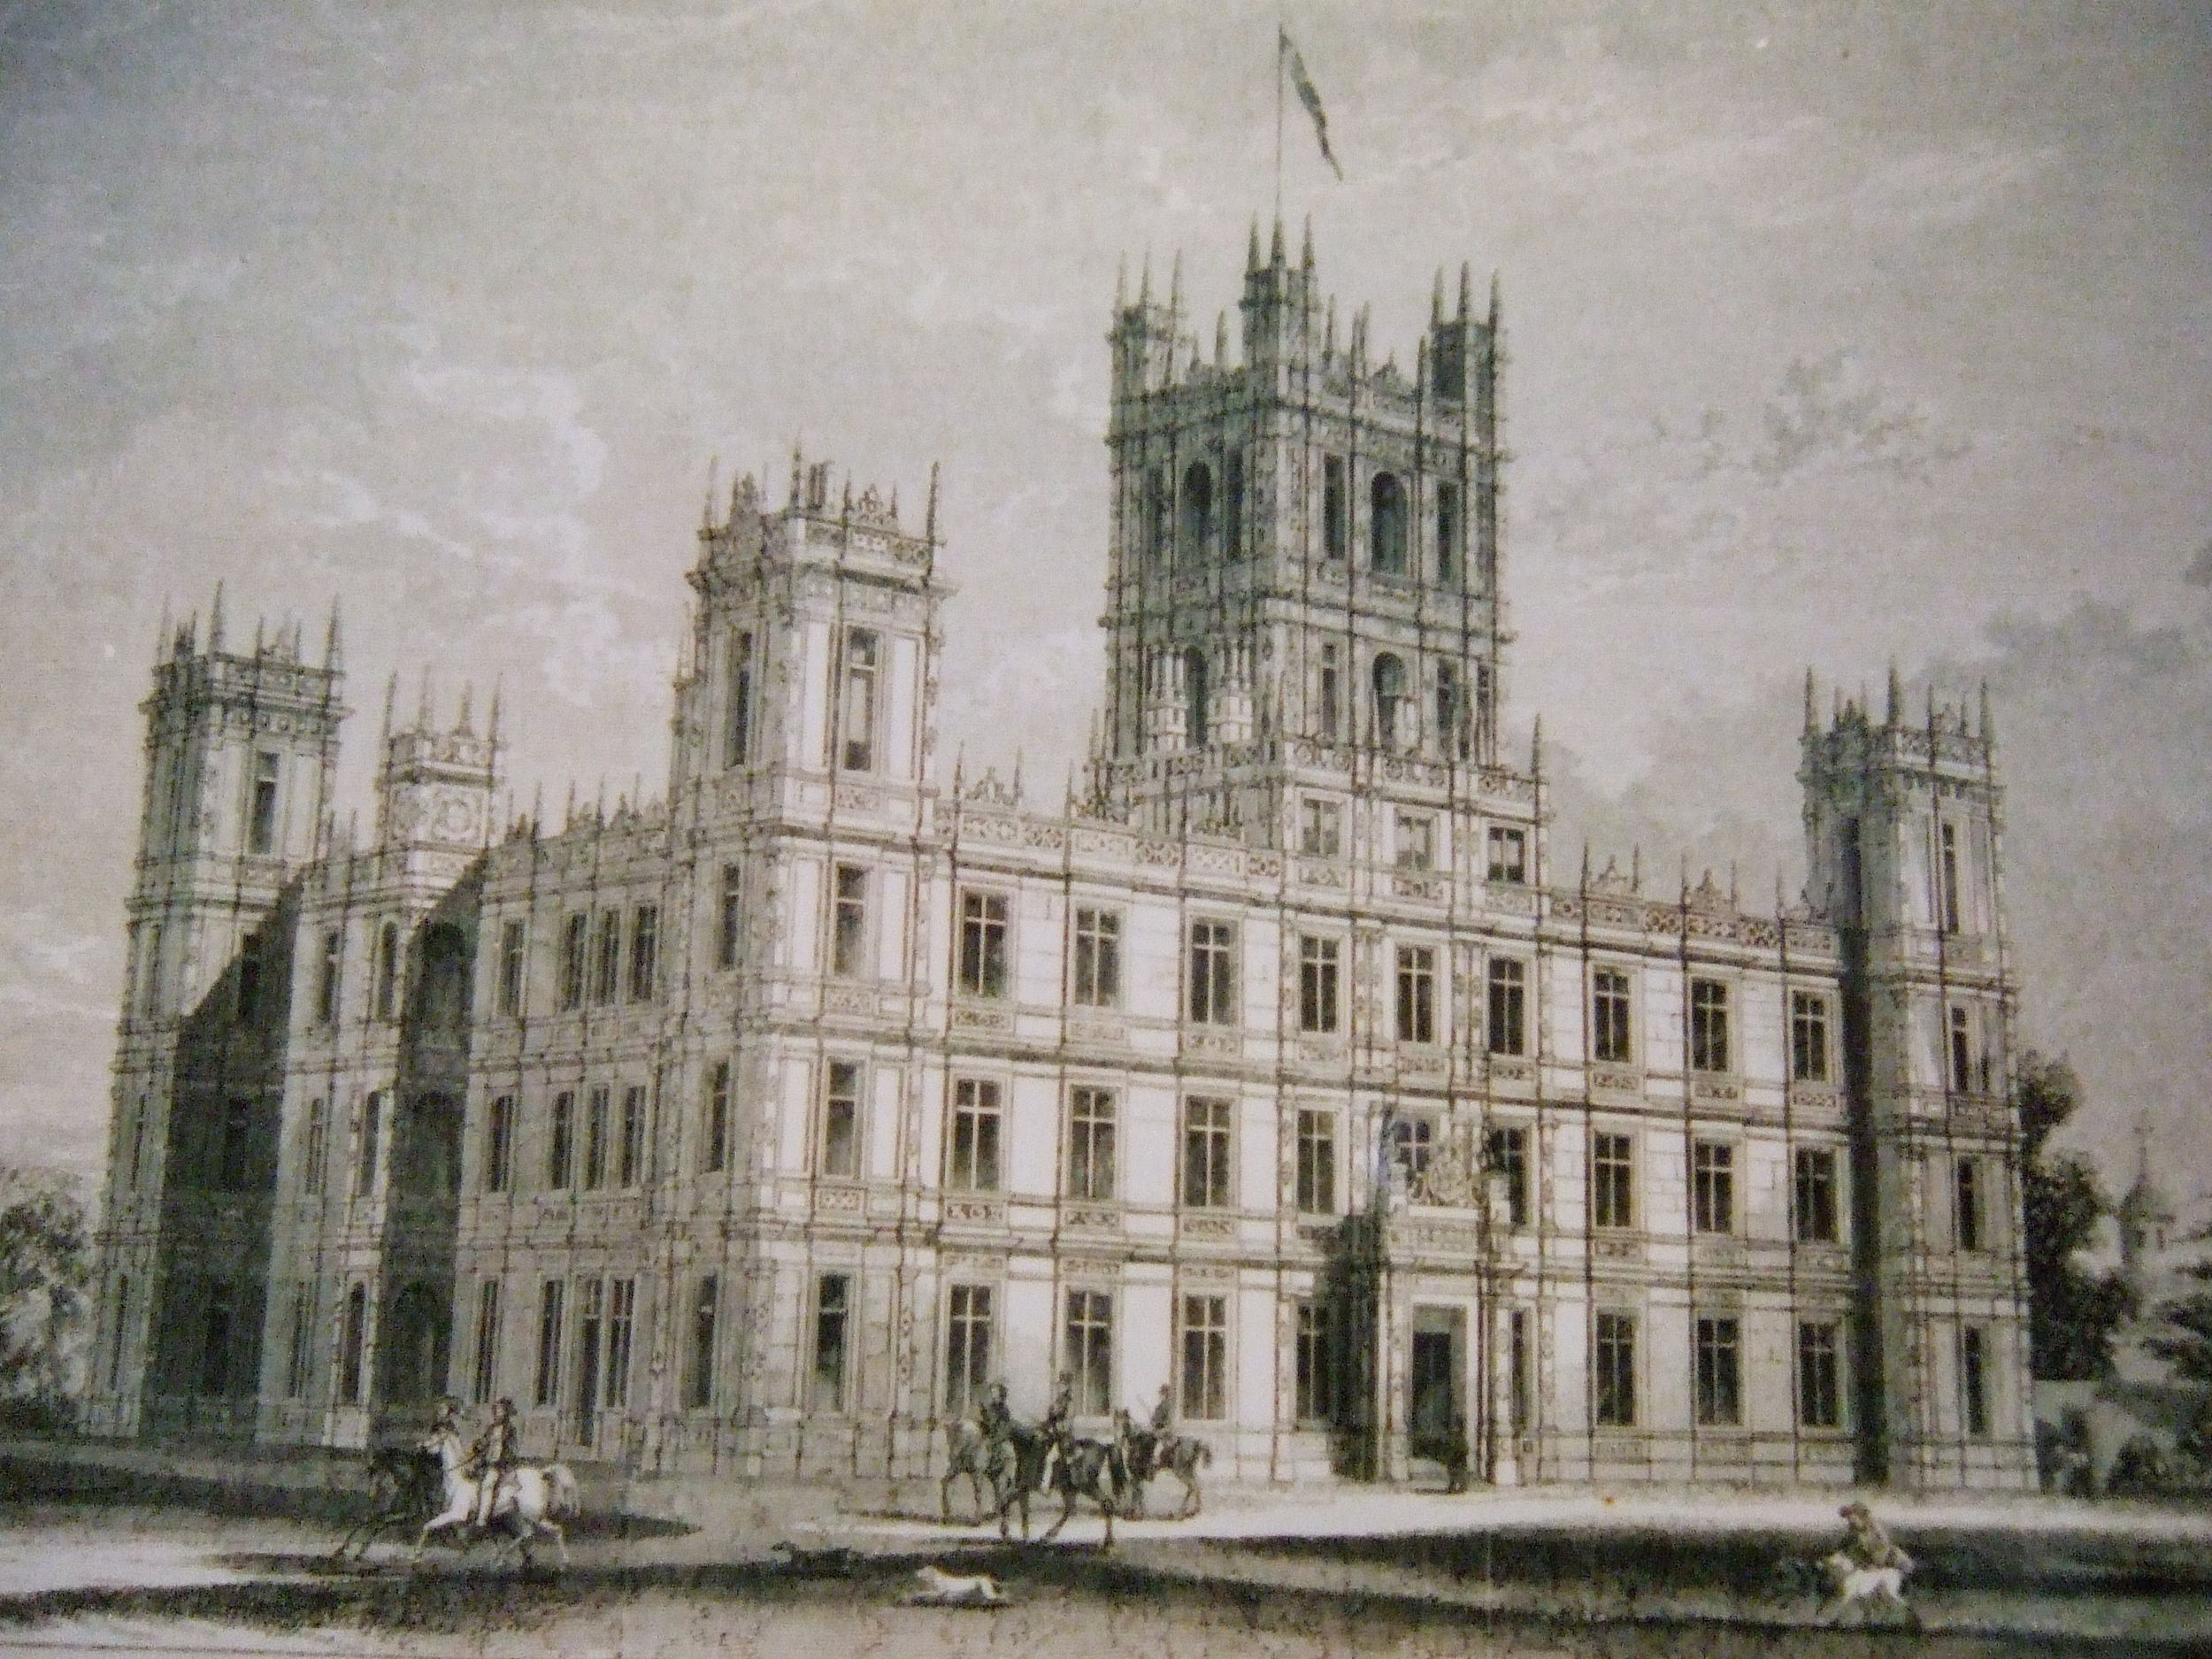 Downton Abbey revealed - The story of Highclere Castle